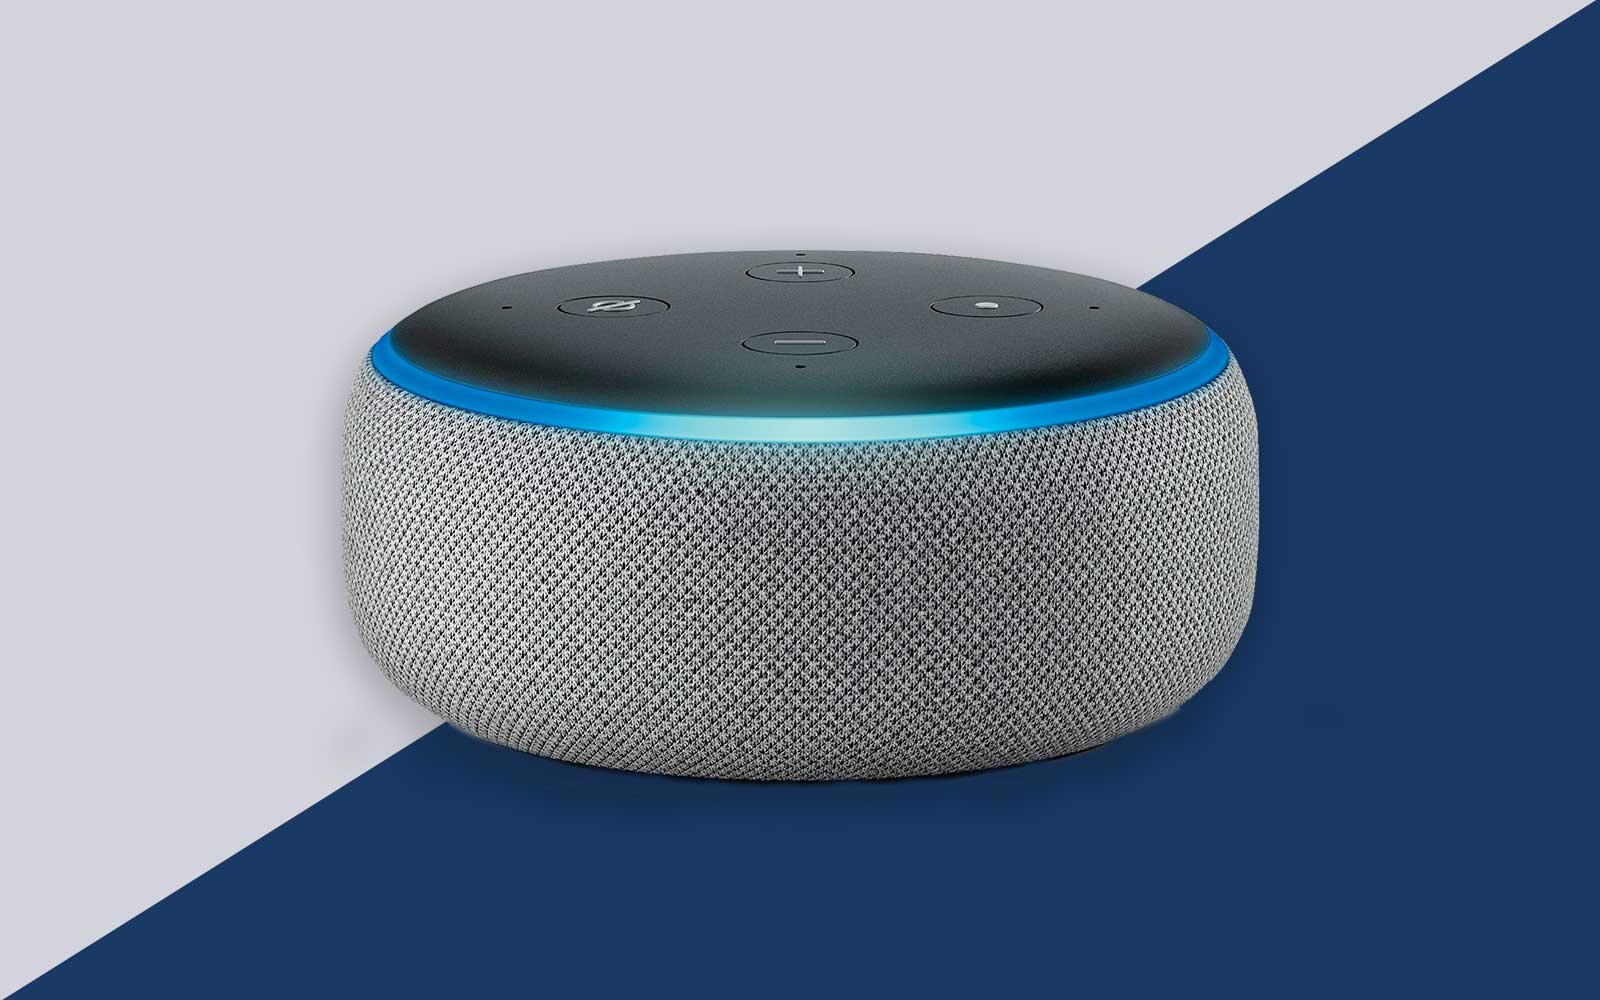 Black Friday Deal Amazon Alexa Echo Dot Is 22 For Cyber Monday Travel Leisure